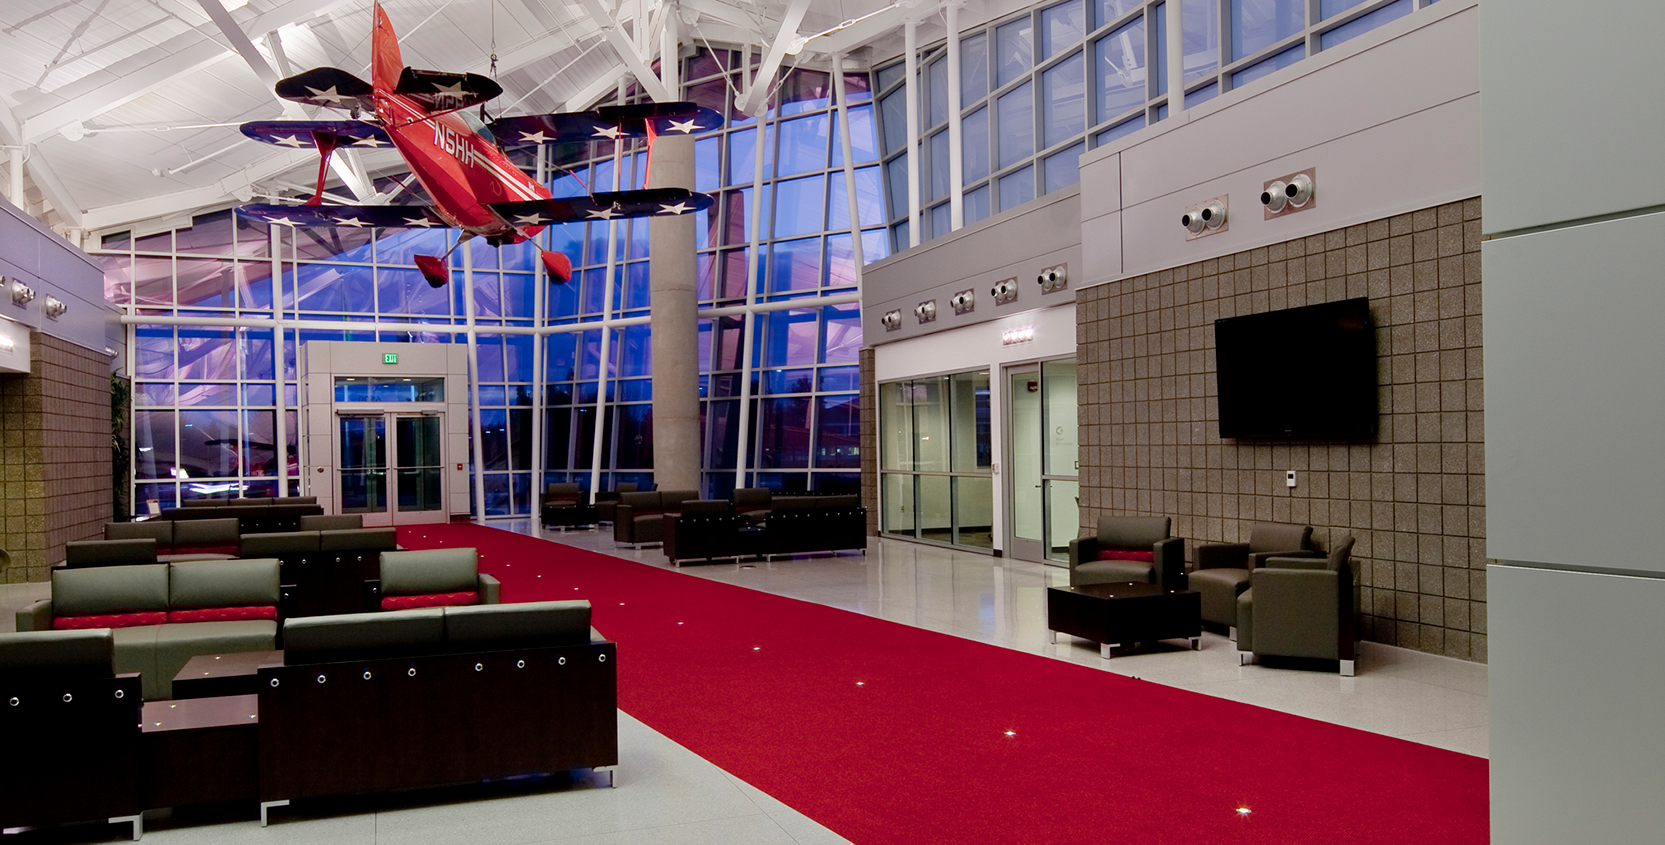 Oakland County International Airport New Terminal and Offices Interior 1665x845